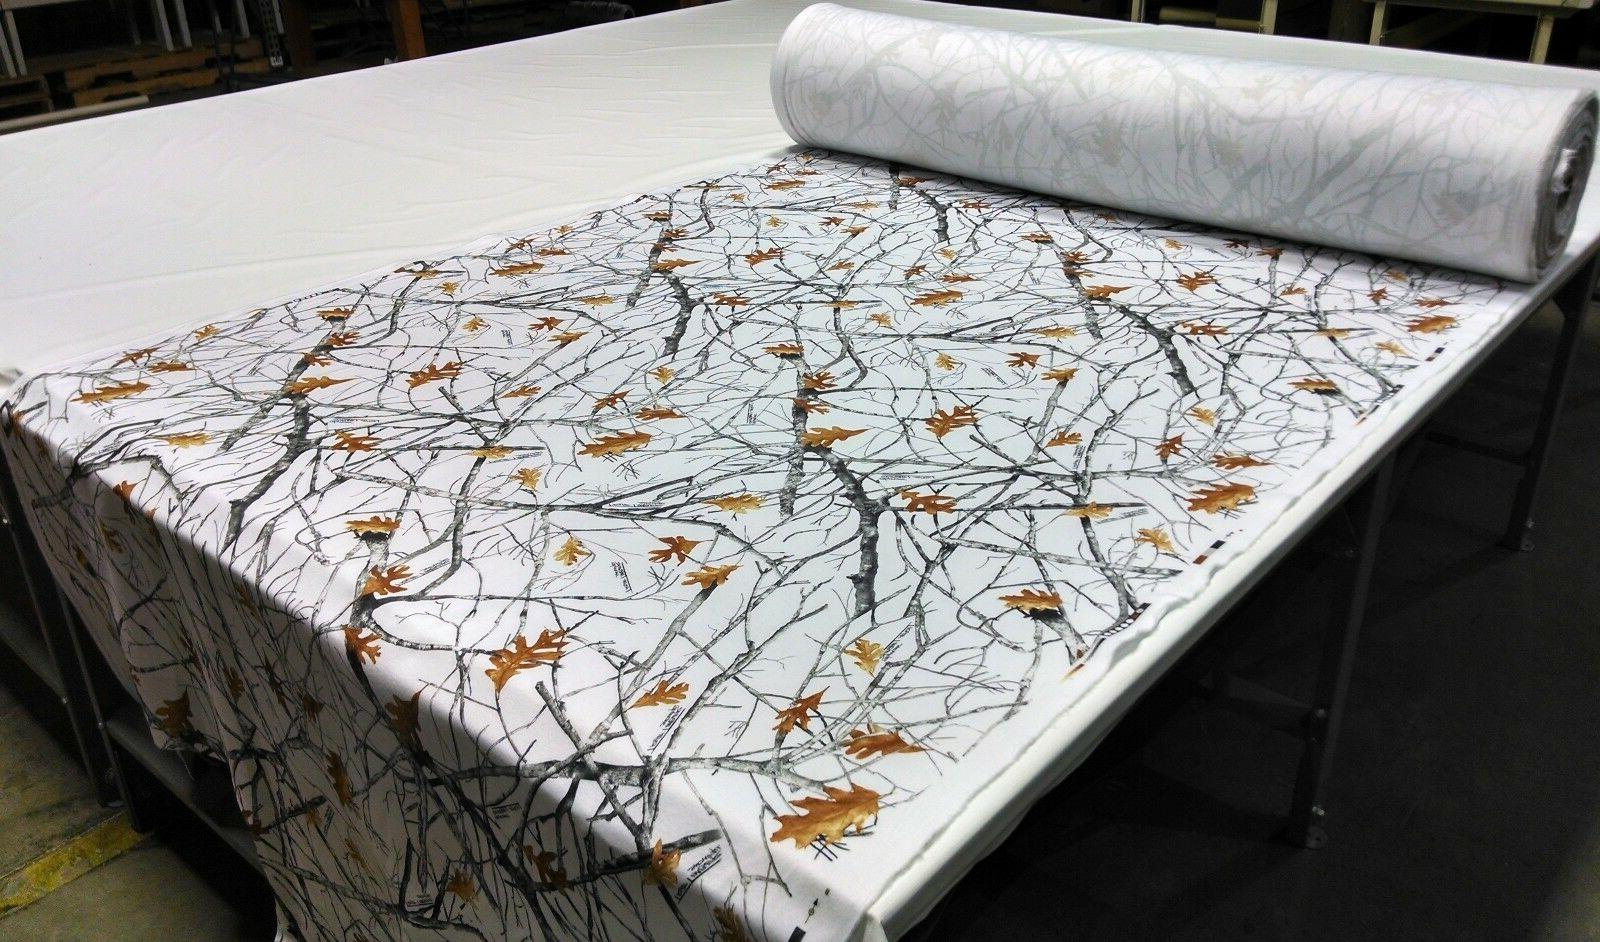 snowfall camo fleece sweatshirt blanket hunting fabric